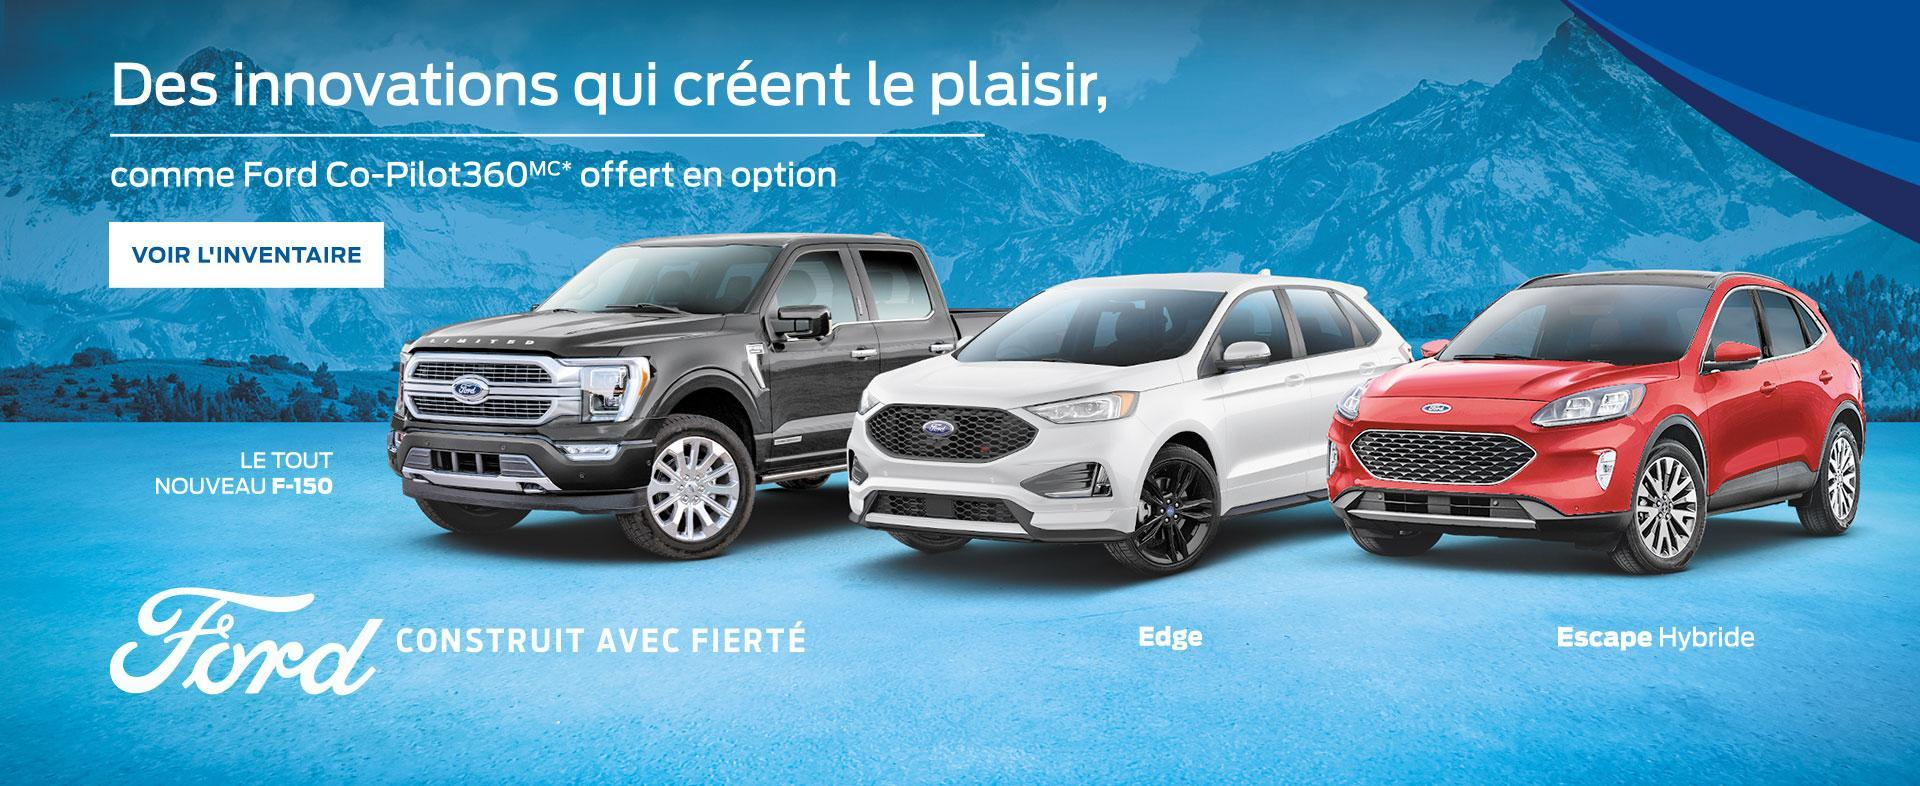 Ford Co-Pilot 360 Technology | Ford du Canada